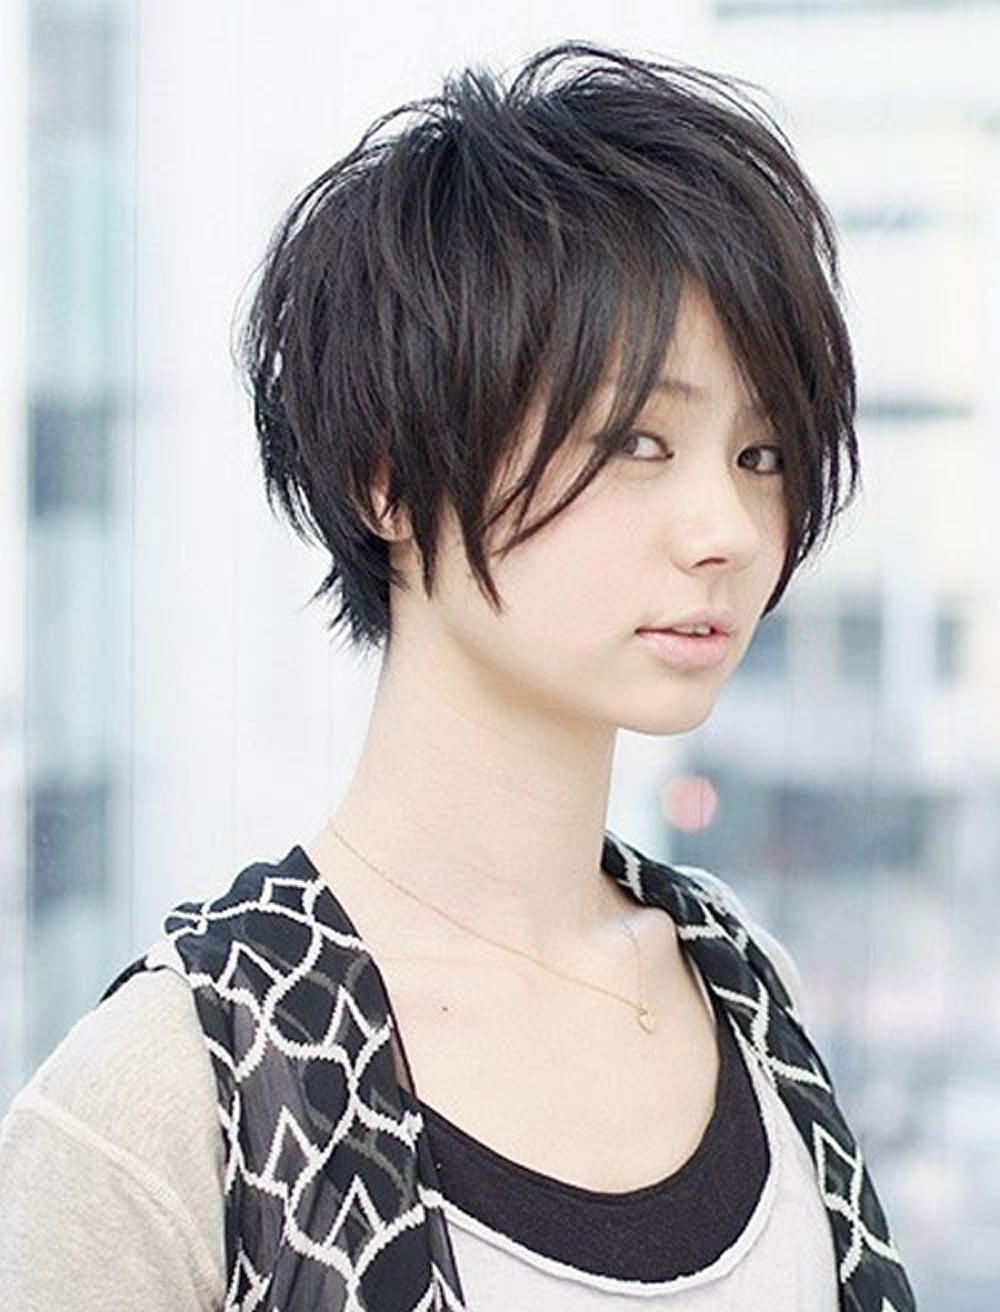 Hairstyle For Asian Girl